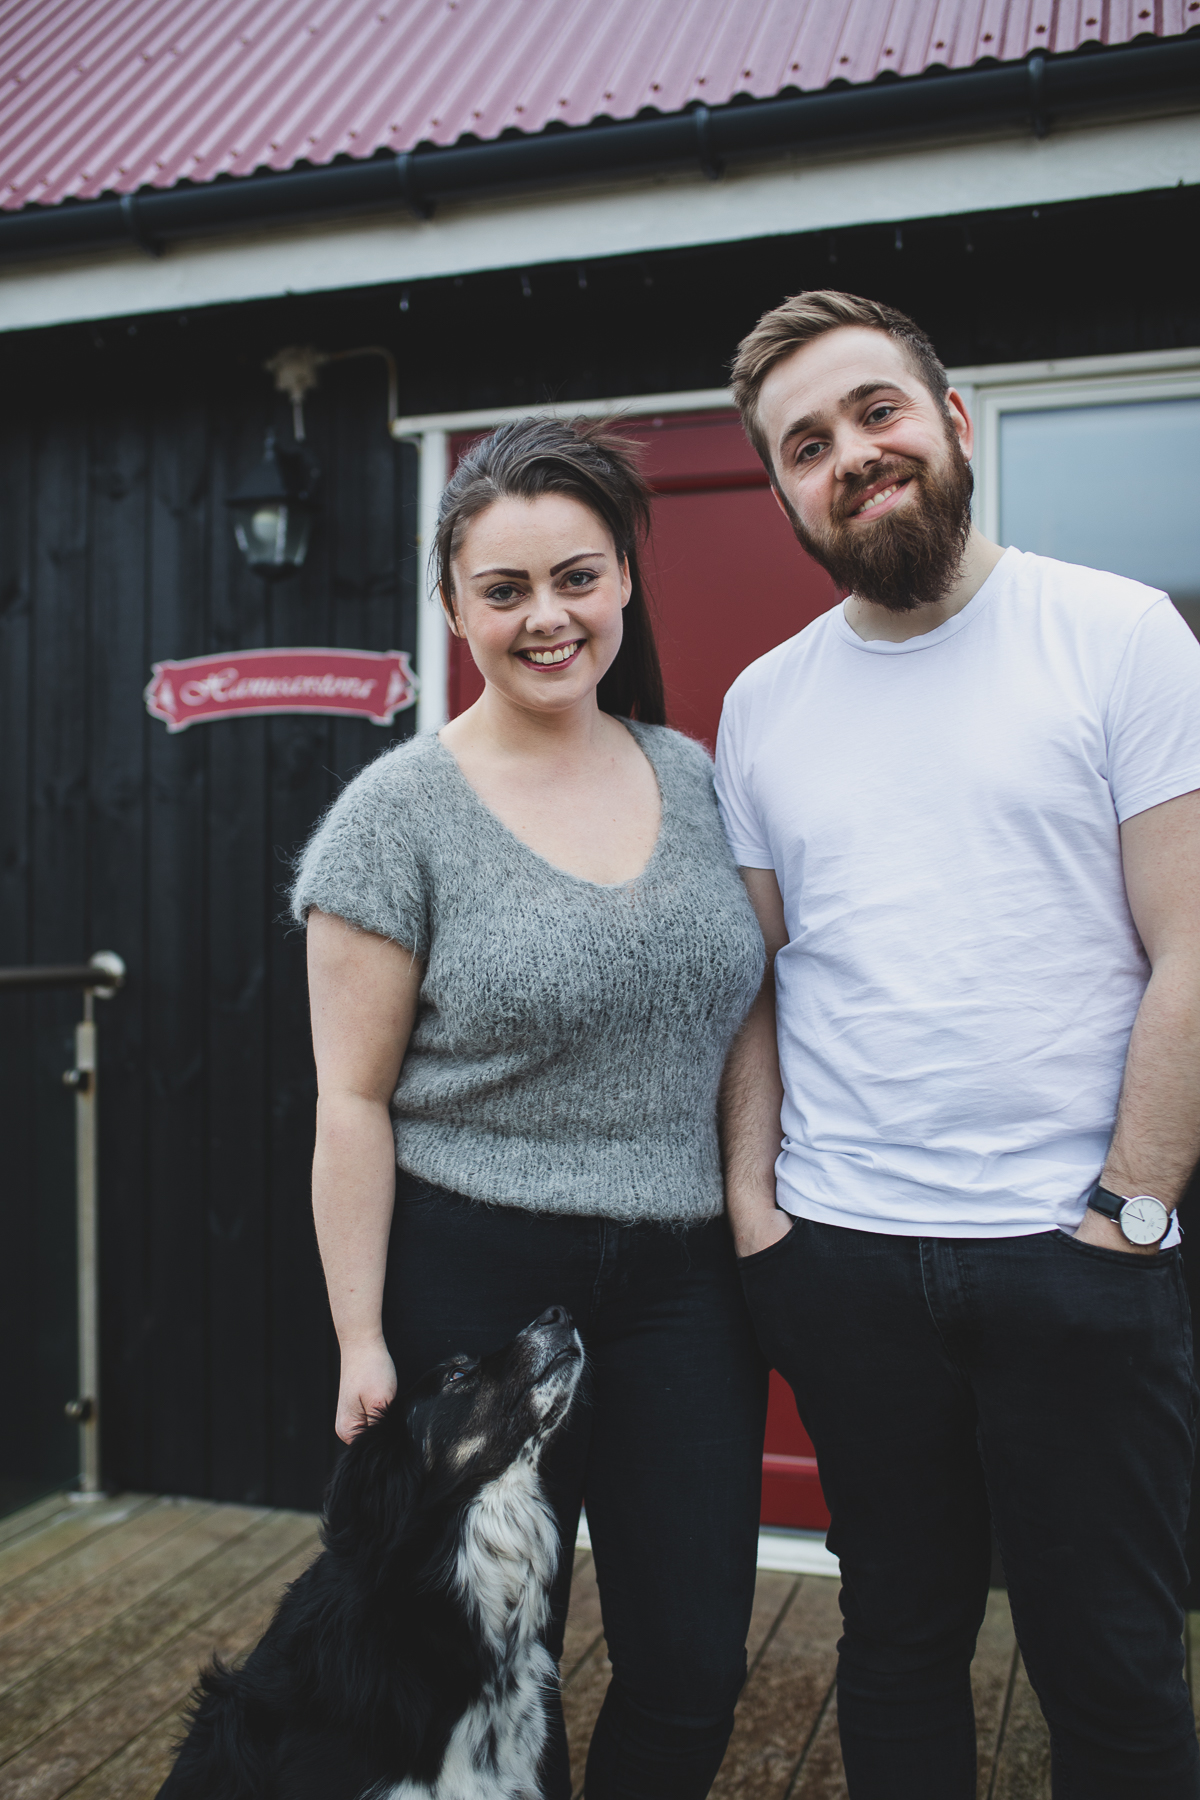 Who are we ? - Hi! We are Harriet and John - aka Mrs. & Mr. Hanusarstova.To us Hanusarstova isn't just the place we work, it is also our home. This is the place our dreams came true, the place we've worked hard to create, the place stories are told, meals are shared, good conversations take place and the place closest to our heart. Little did we know back in 2013 when we decided to buy an old abandoned house in the tiny village of Æðuvík, how much this house would mean to us now 6 years later - but one thing is certain, it's the best decision we've ever made.Harriet it now a 5th generation sheep farmer in the village, taking over the farm after her father. While sheep farming isn't a career in it self, Harriet has managed to turn it into so much more than that. As a photographer Harriet's art work is mostly based on the animals on the farm, especially the sheep, which decorate many homes by now including Hanusarstova.  To Harriet animal welfare is key, she talks to them with her gentle voice and makes sure of their well being every day. John is the handyman, salesperson, fixer, bookkeeper and storyteller. He is very passionate about everything he does, especially building and his braised lamb that he cooks for 10 hours +, and believe me when I say it is probably the best lamb you'll ever have. He will go above and beyond to please everyone and especially when it comes to Harriet's (his wifes) crazy ideas he is eventually always keep for any project - be it an instagram friendly chicken-coop , baby quails, baby lams, herb garden, event or anything else. Together we have worked hard for Hanusarstova and are now ready to share it with you. We invite you to come join us on the farm, dine with us, meet the animals and enjoy the hospitality. We'll tell you stories, answer your questions, show you our world, let you smell some fermented meat and taste The Faroe Islands - to us that is what Heimablídni is all about.